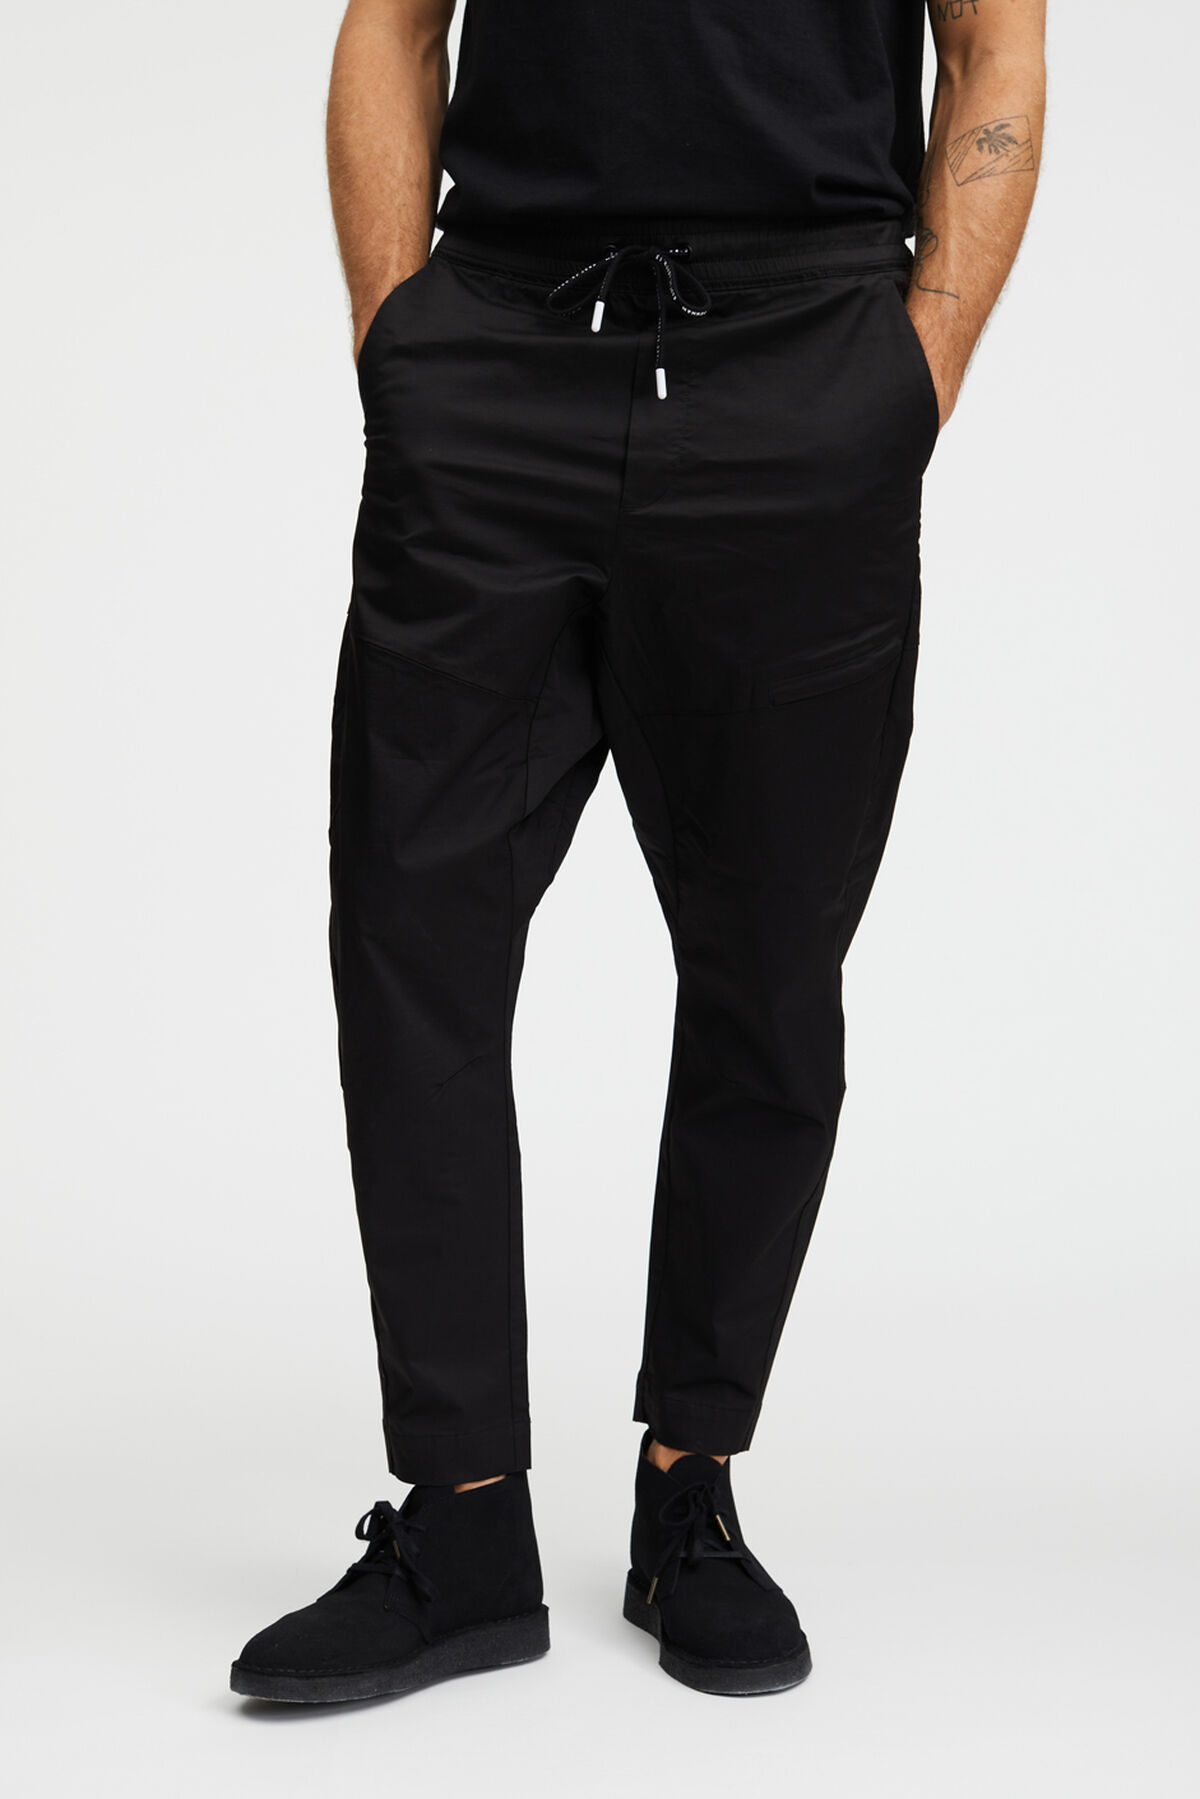 KOBE PANT Comfort Stretch Twill - Loose, Tapered Fit